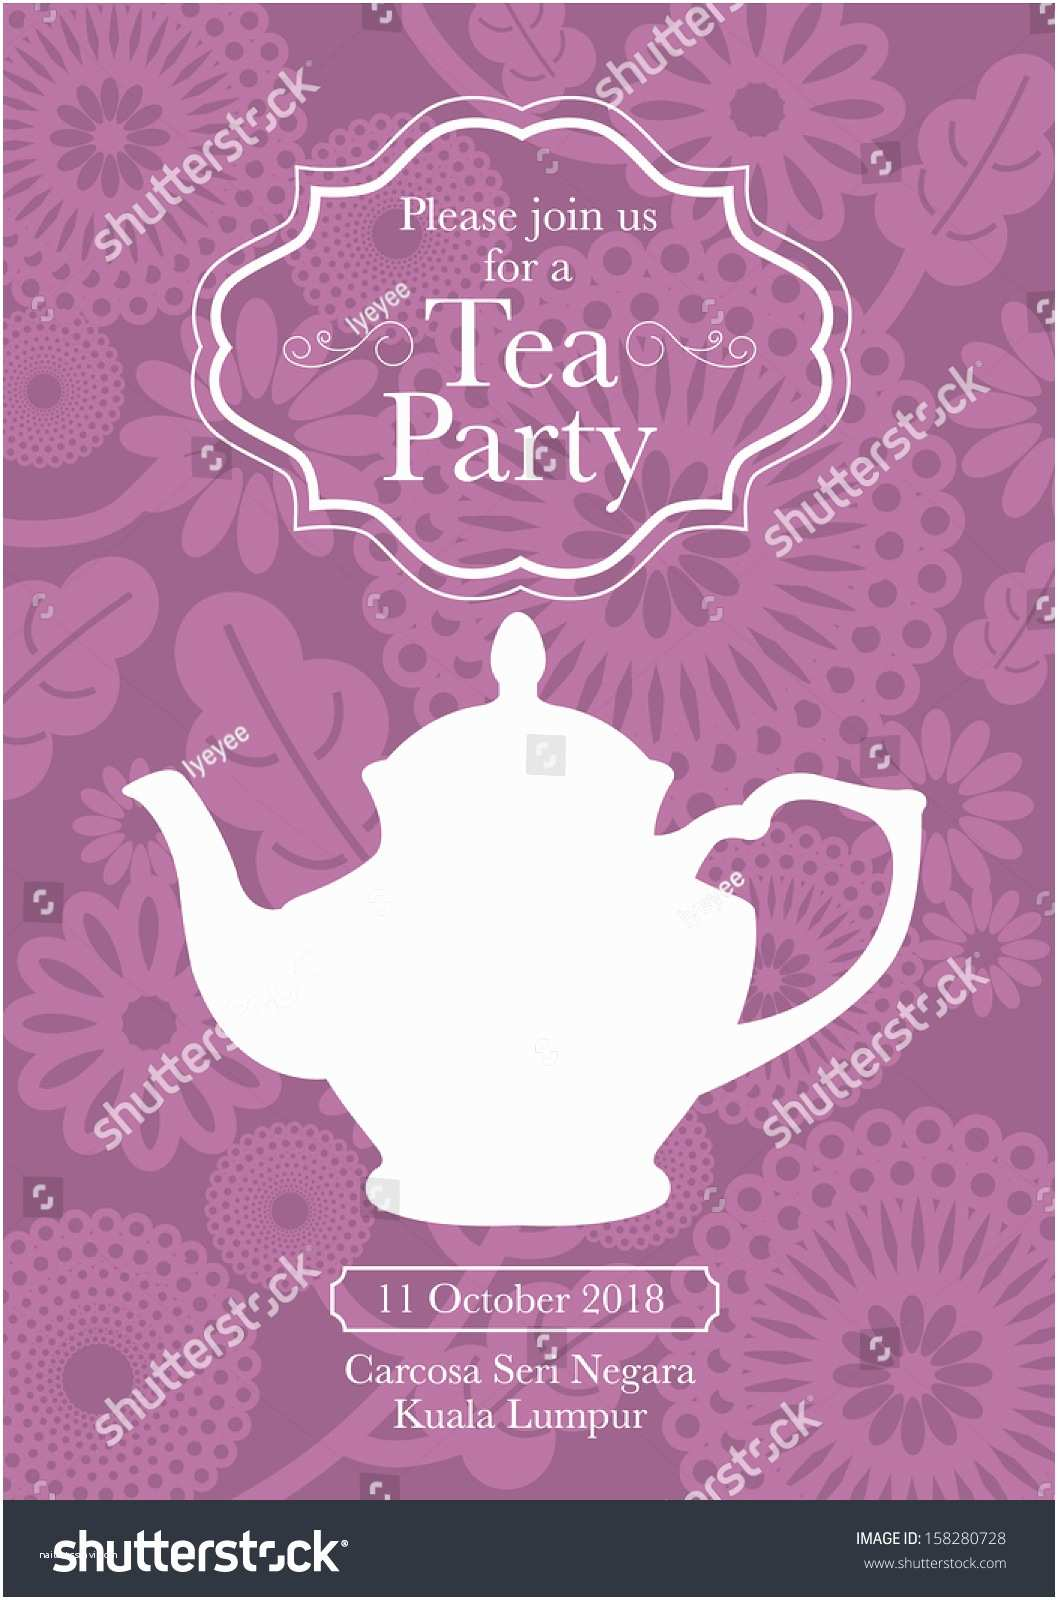 Tea Party Invitations Tea Party Invitation Template – Gangcraft